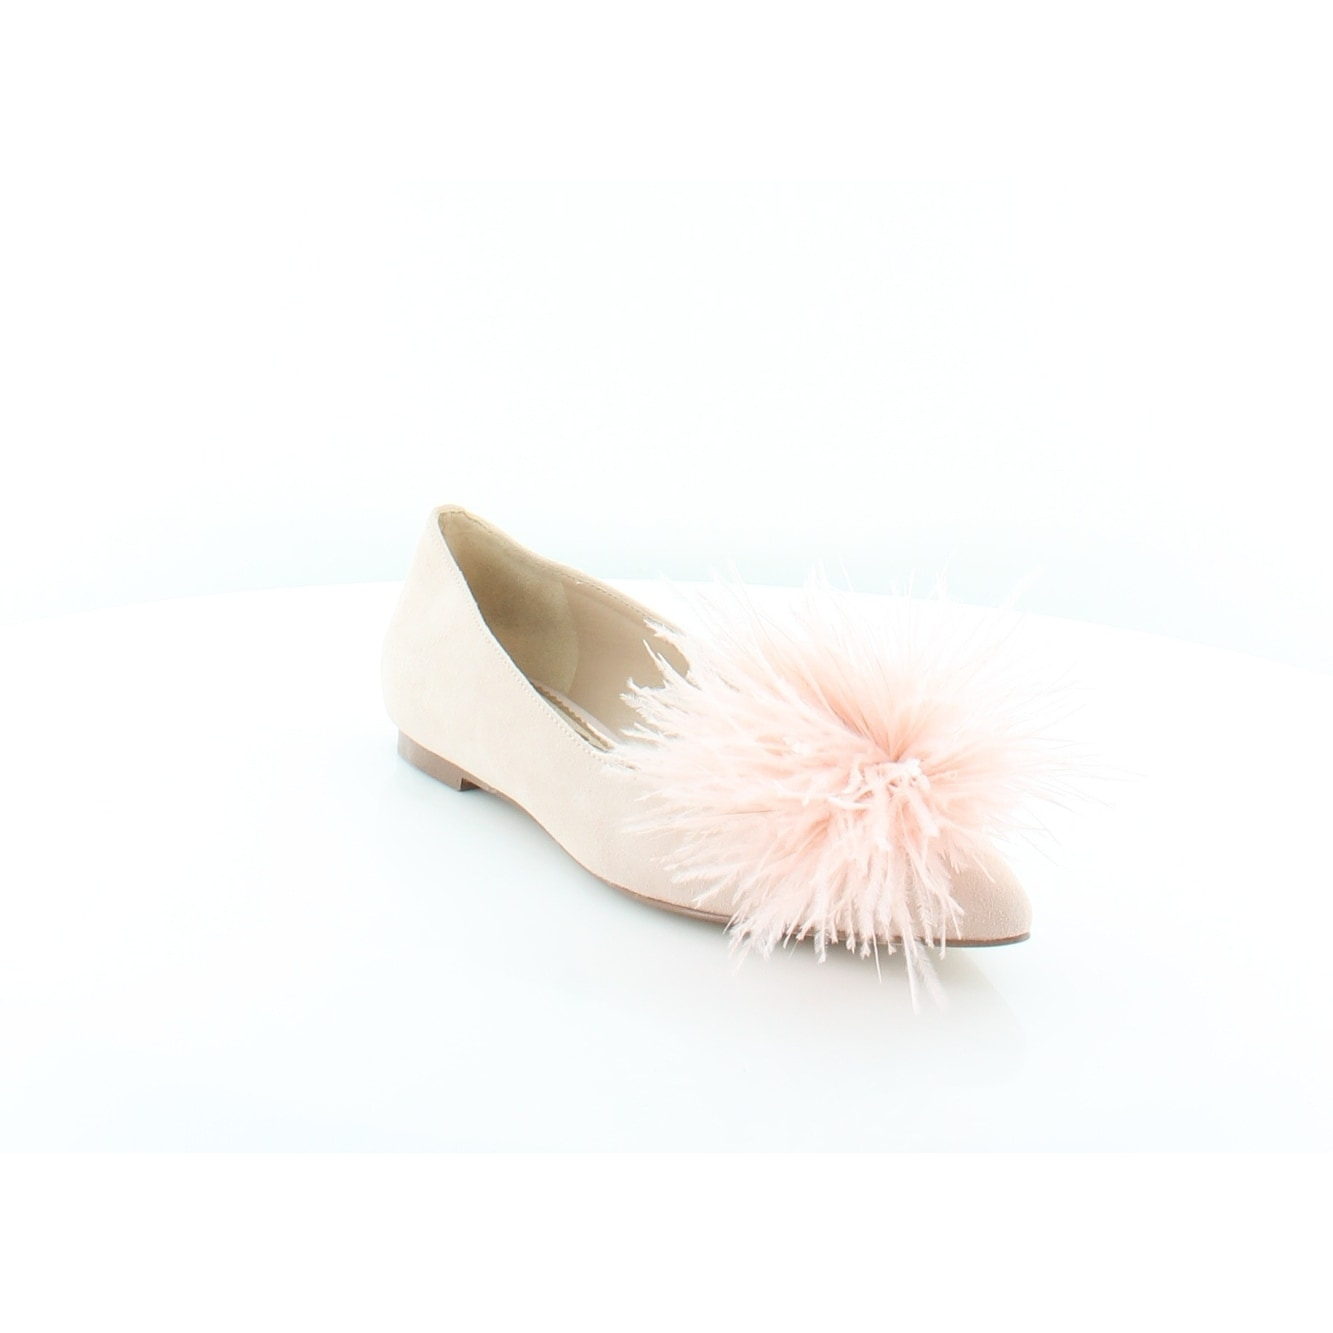 475f1c015 Shop Sam Edelman Reina Women s FLATS Light Pink - Free Shipping Today -  Overstock - 25626192